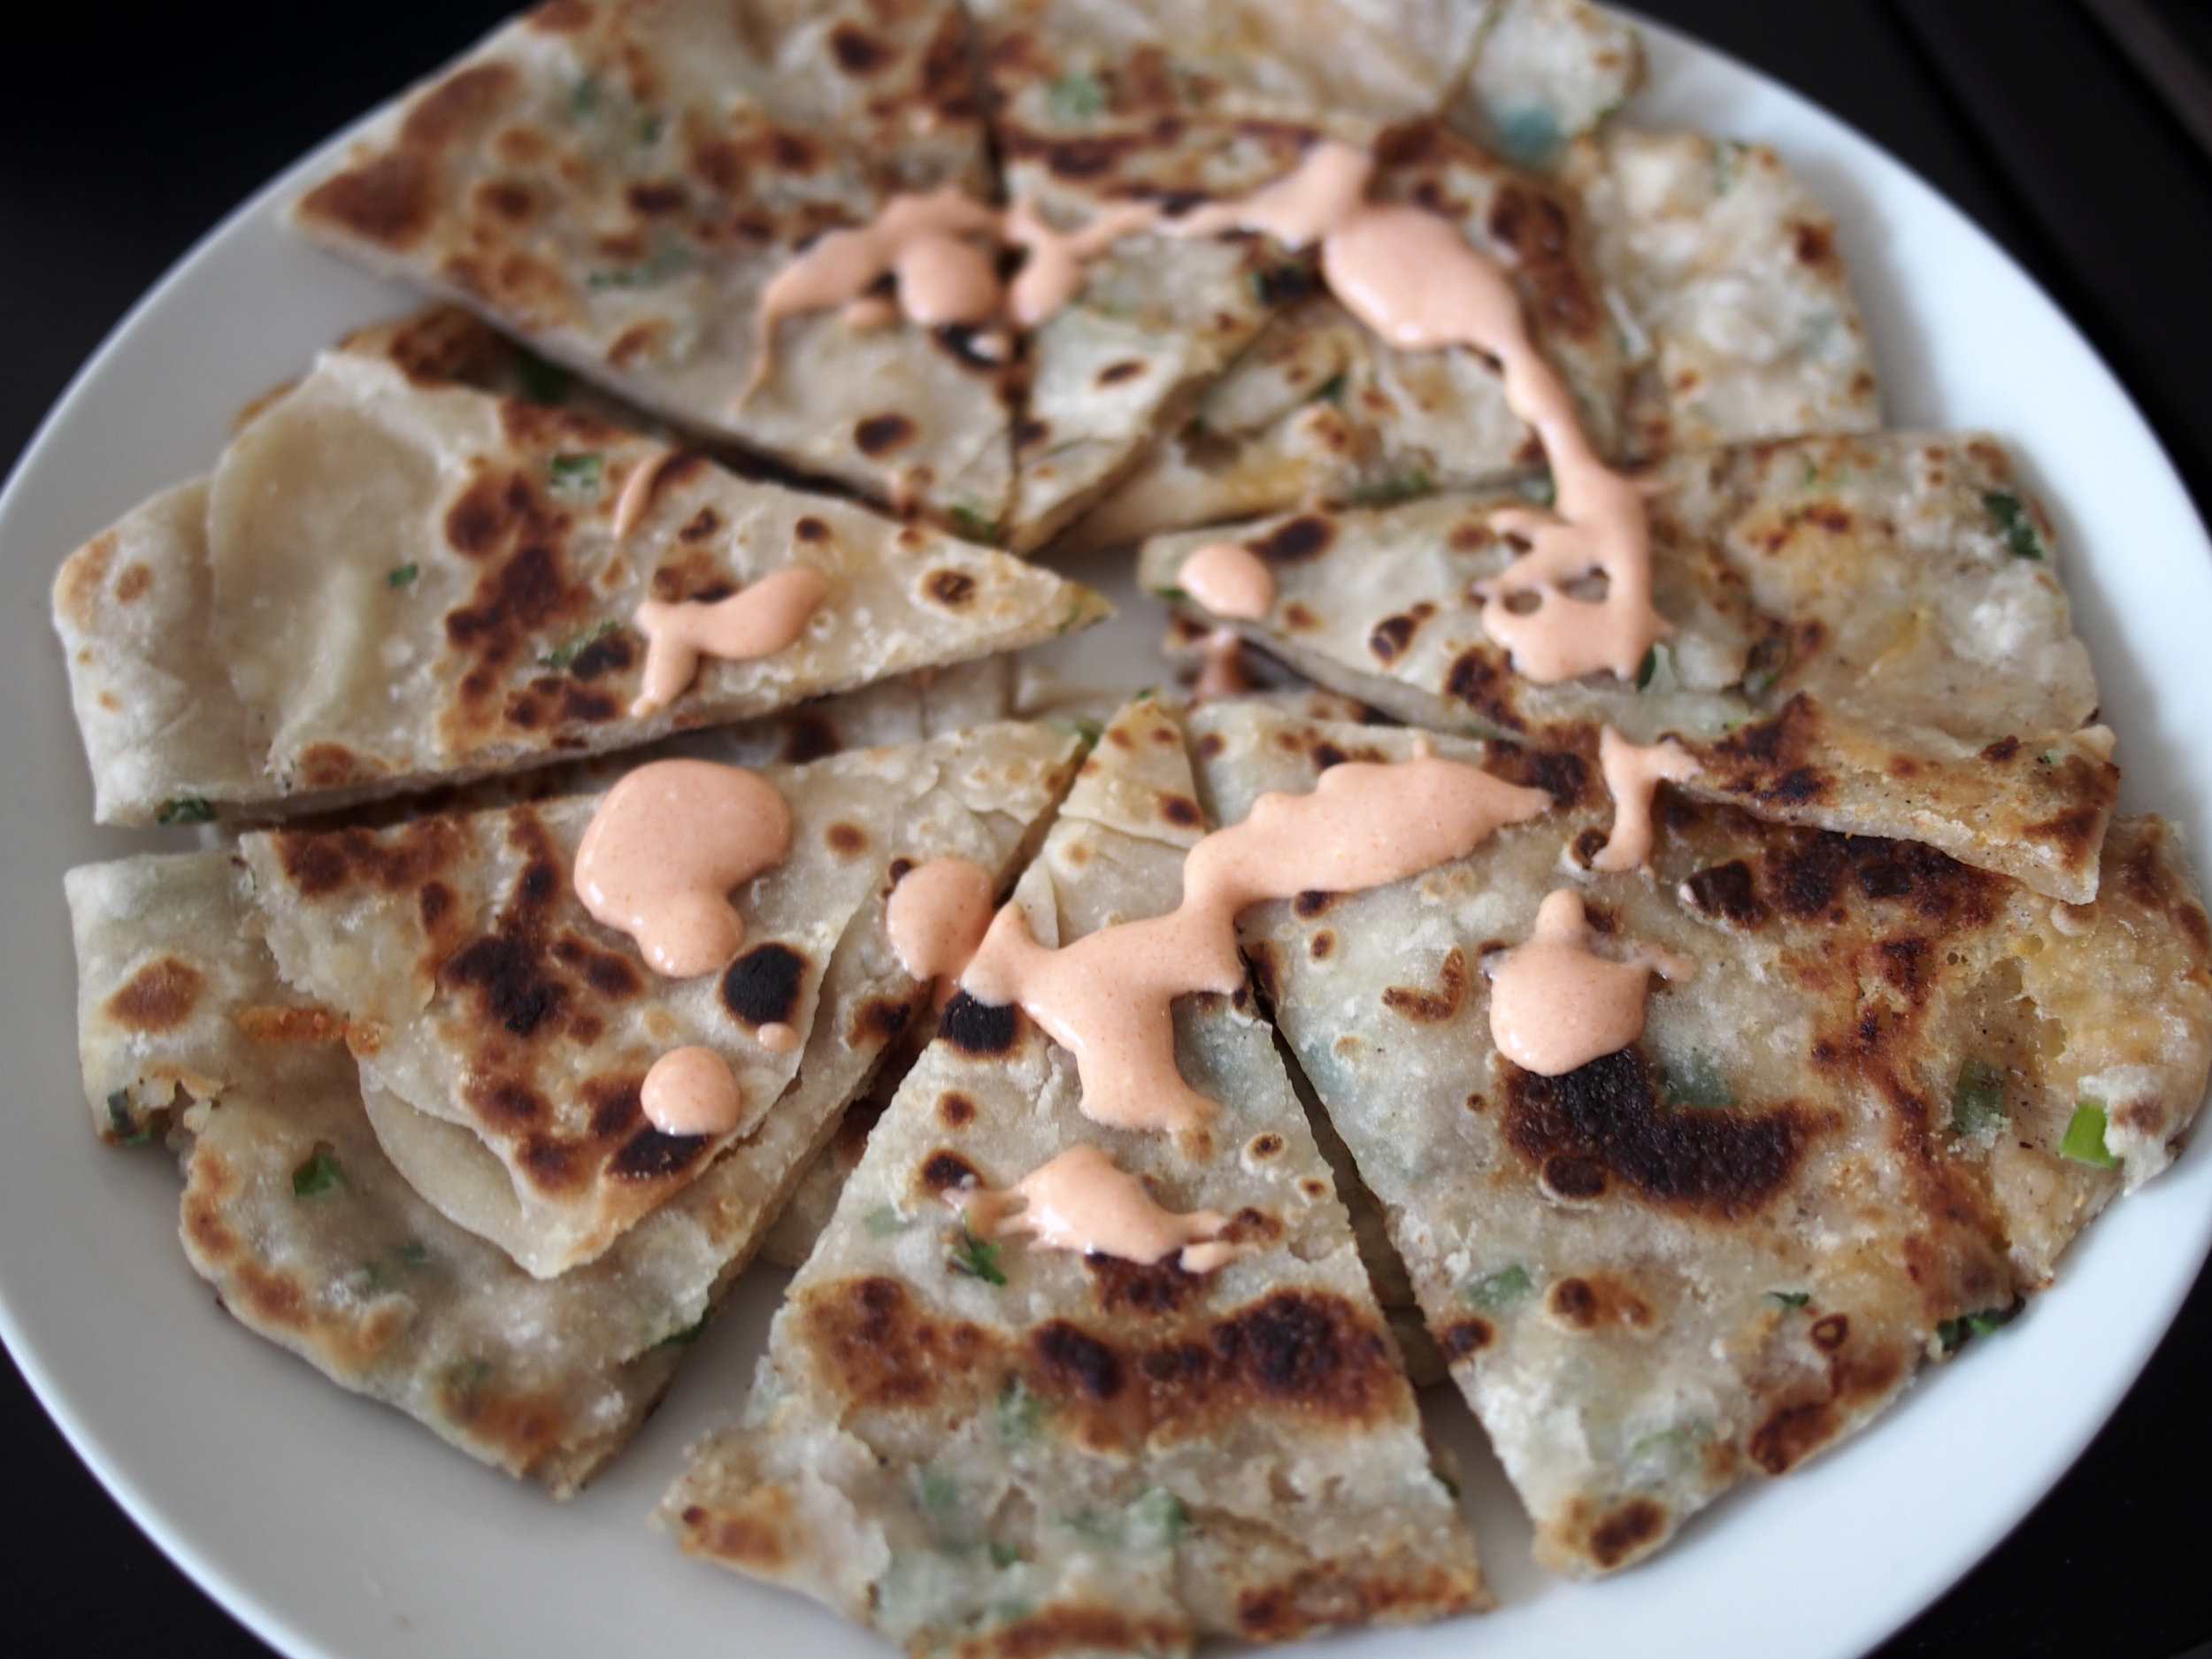 Scallion pancake stuffed with cheddar and potato and sriracha crema Salvadorena